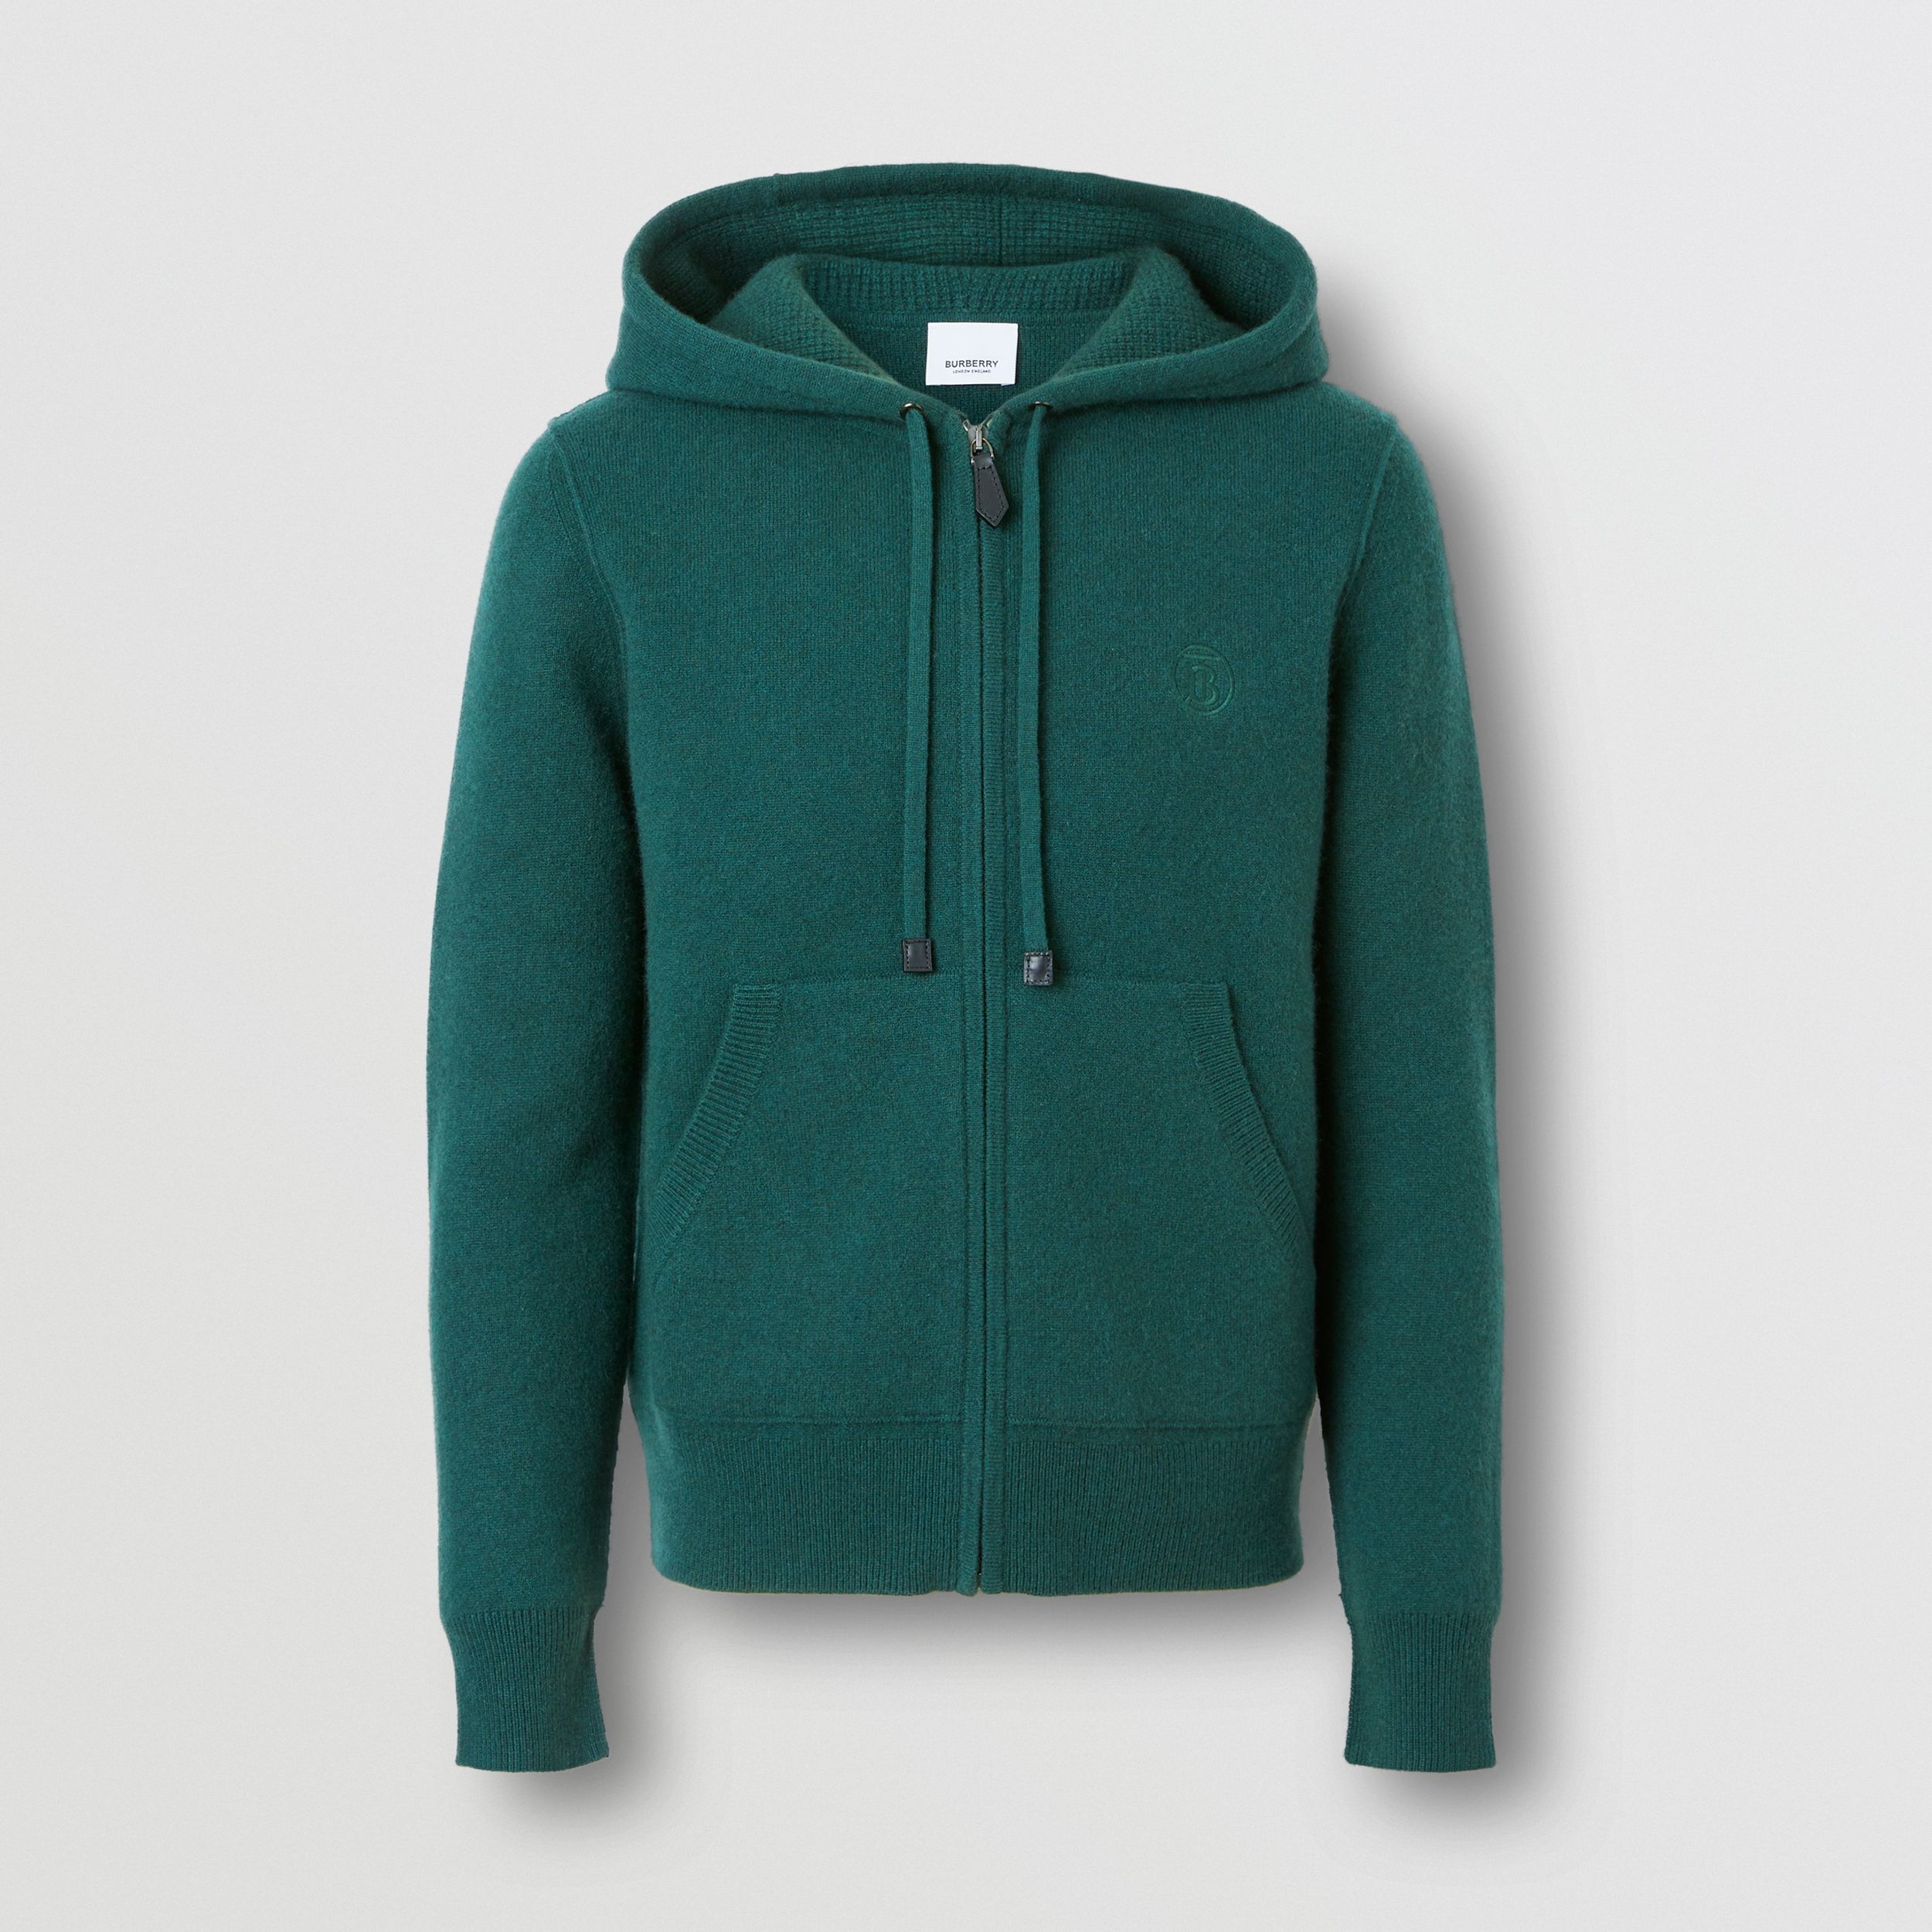 Monogram Motif Cashmere Blend Hooded Top in Bottle Green - Women | Burberry - 4